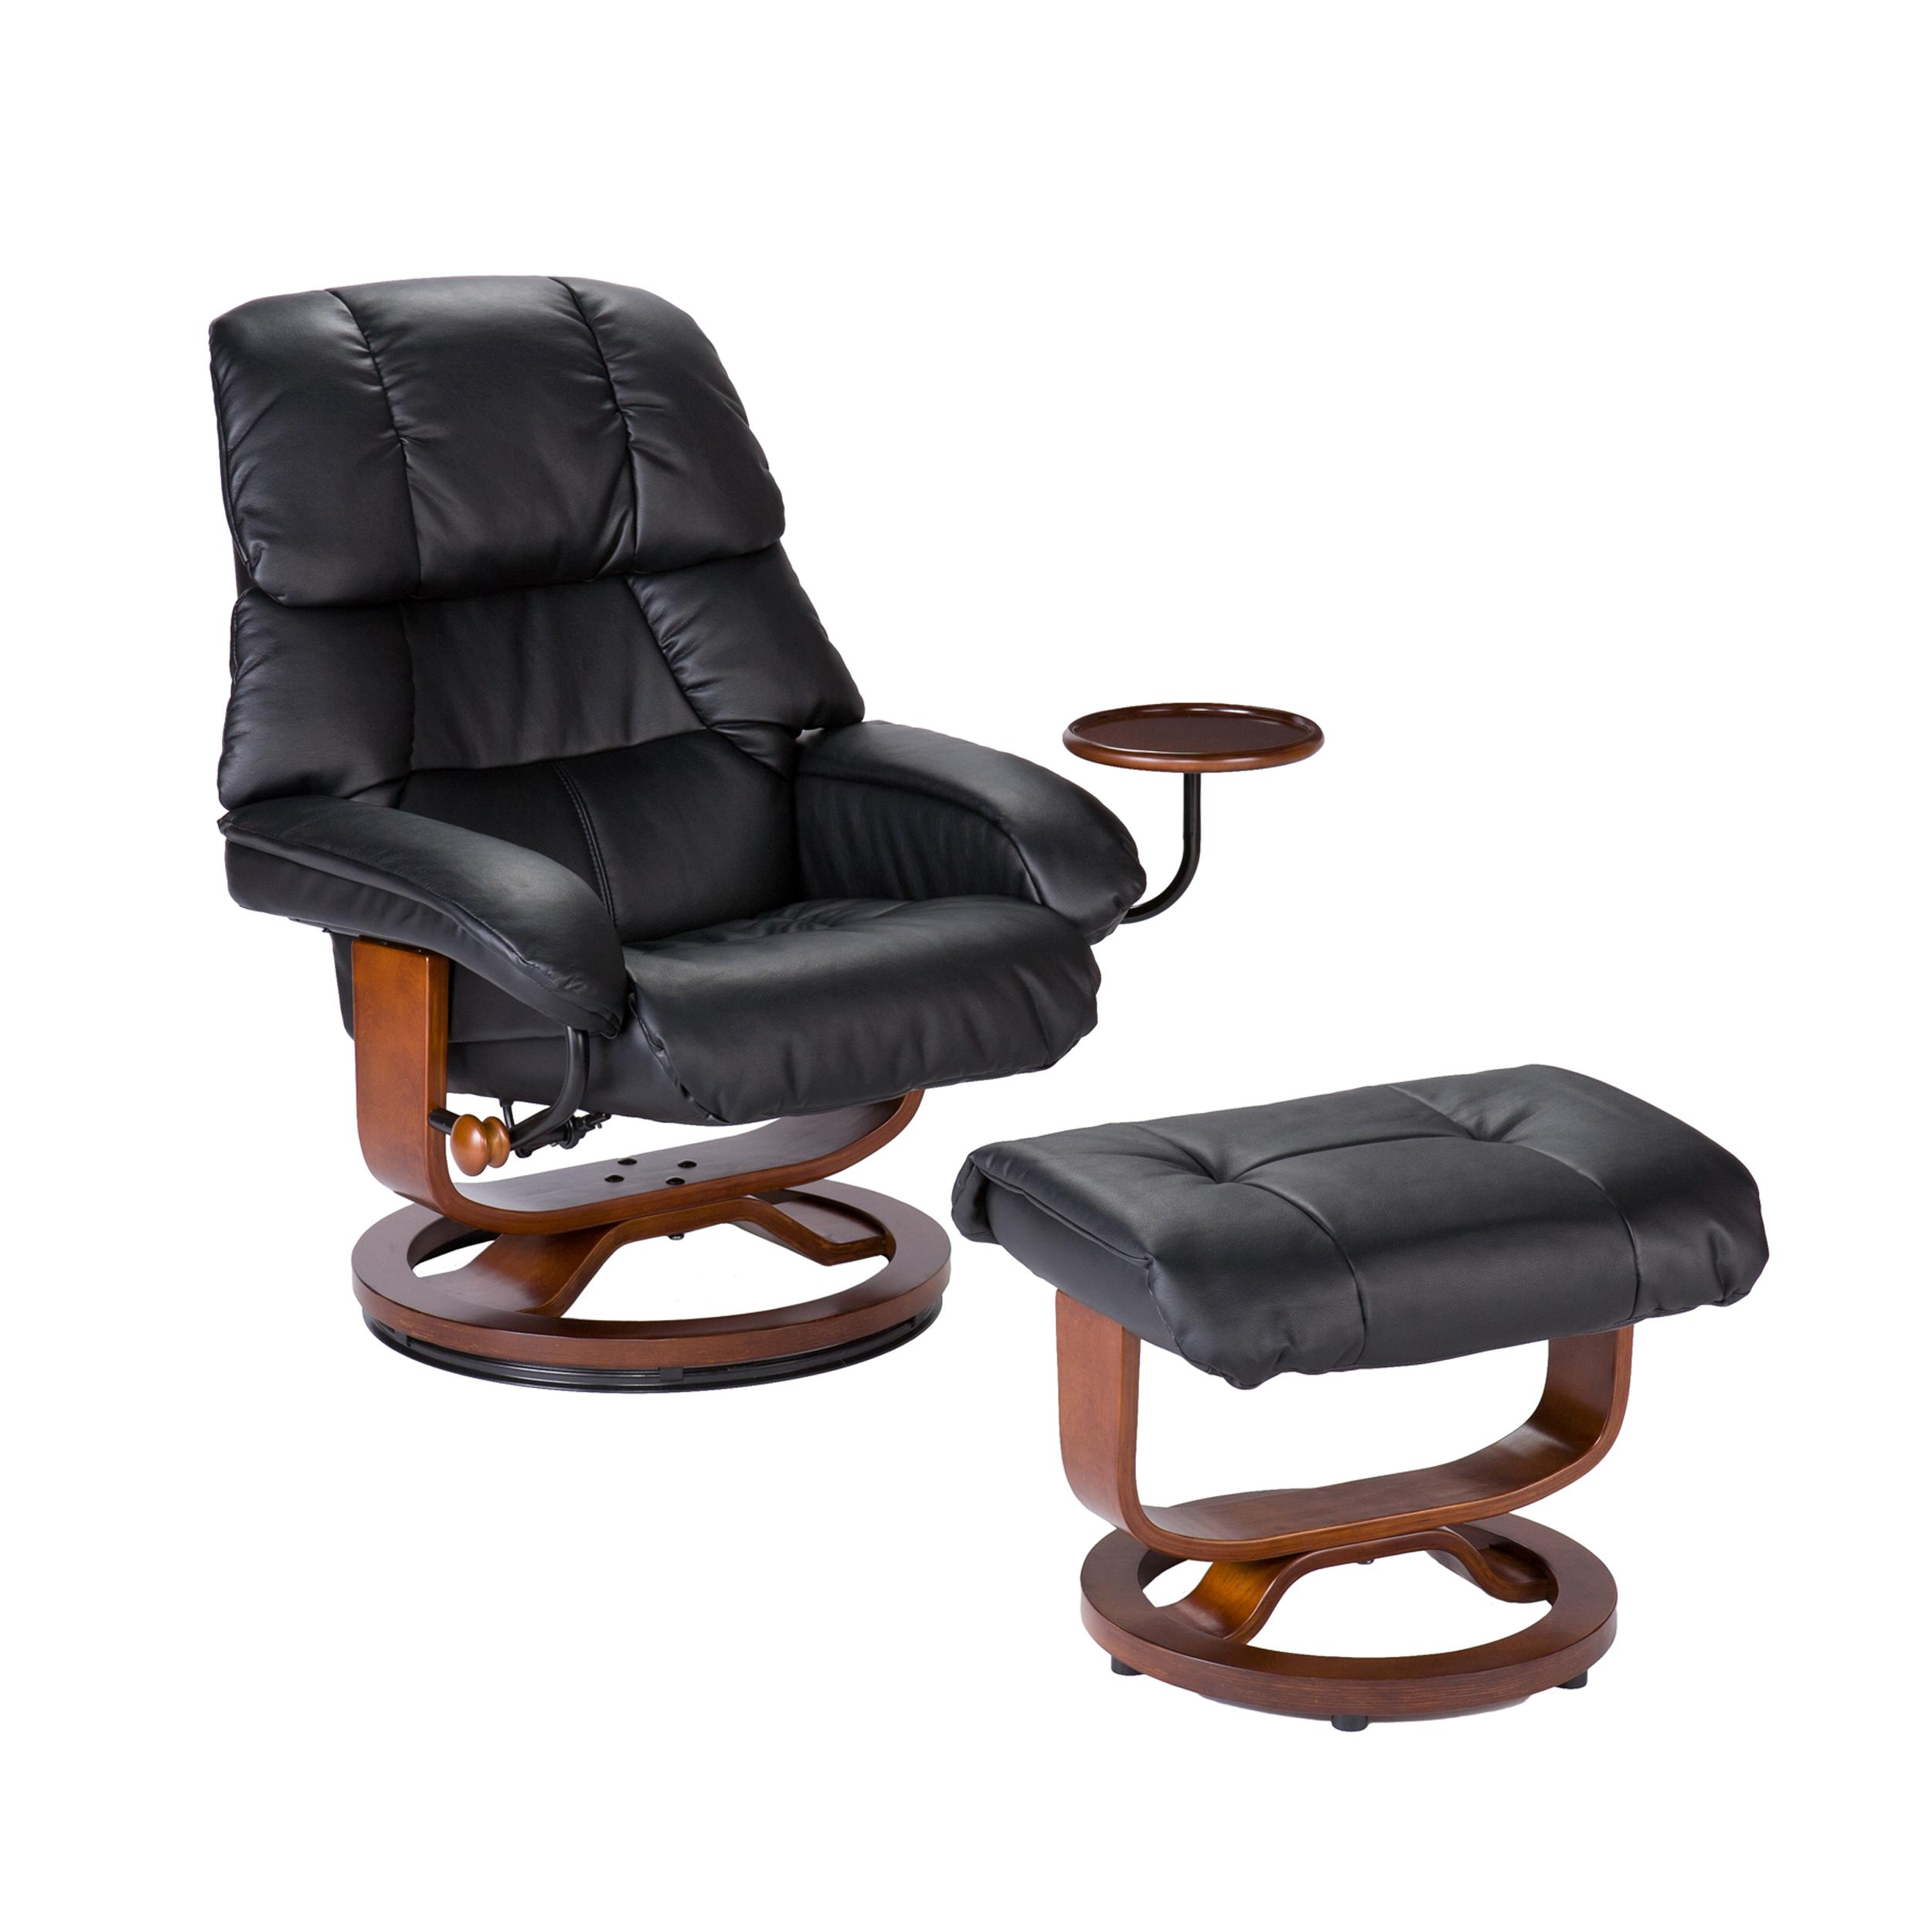 View larger  sc 1 st  Amazon.com : large leather recliner chairs - islam-shia.org